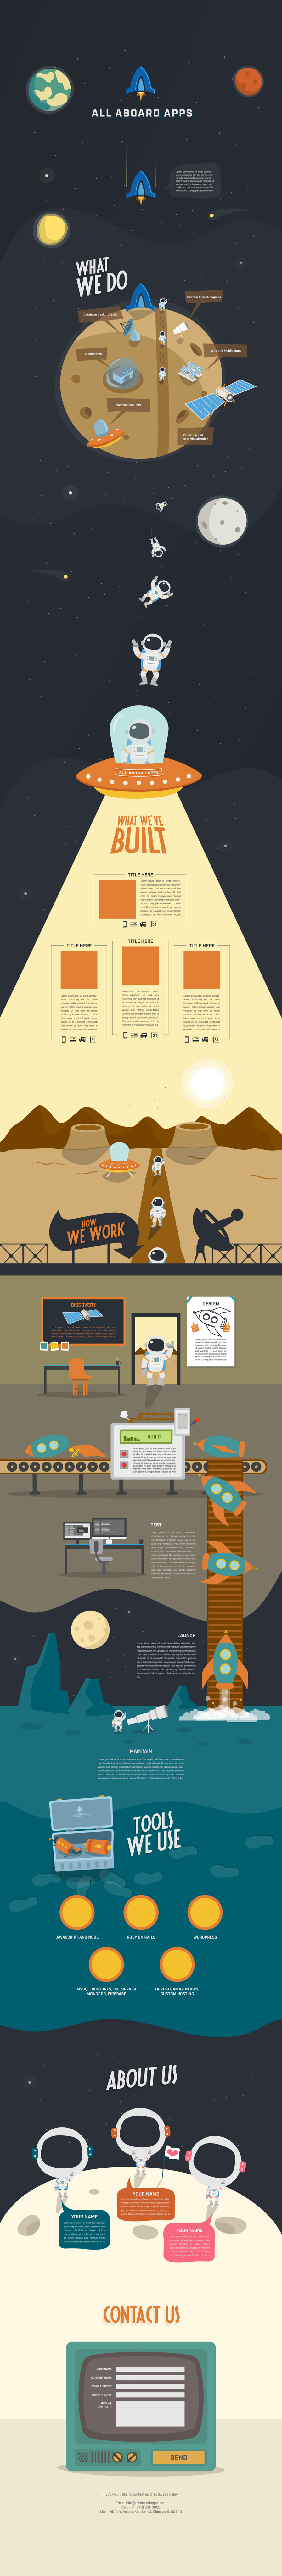 All Aboard Apps Landing Page Design